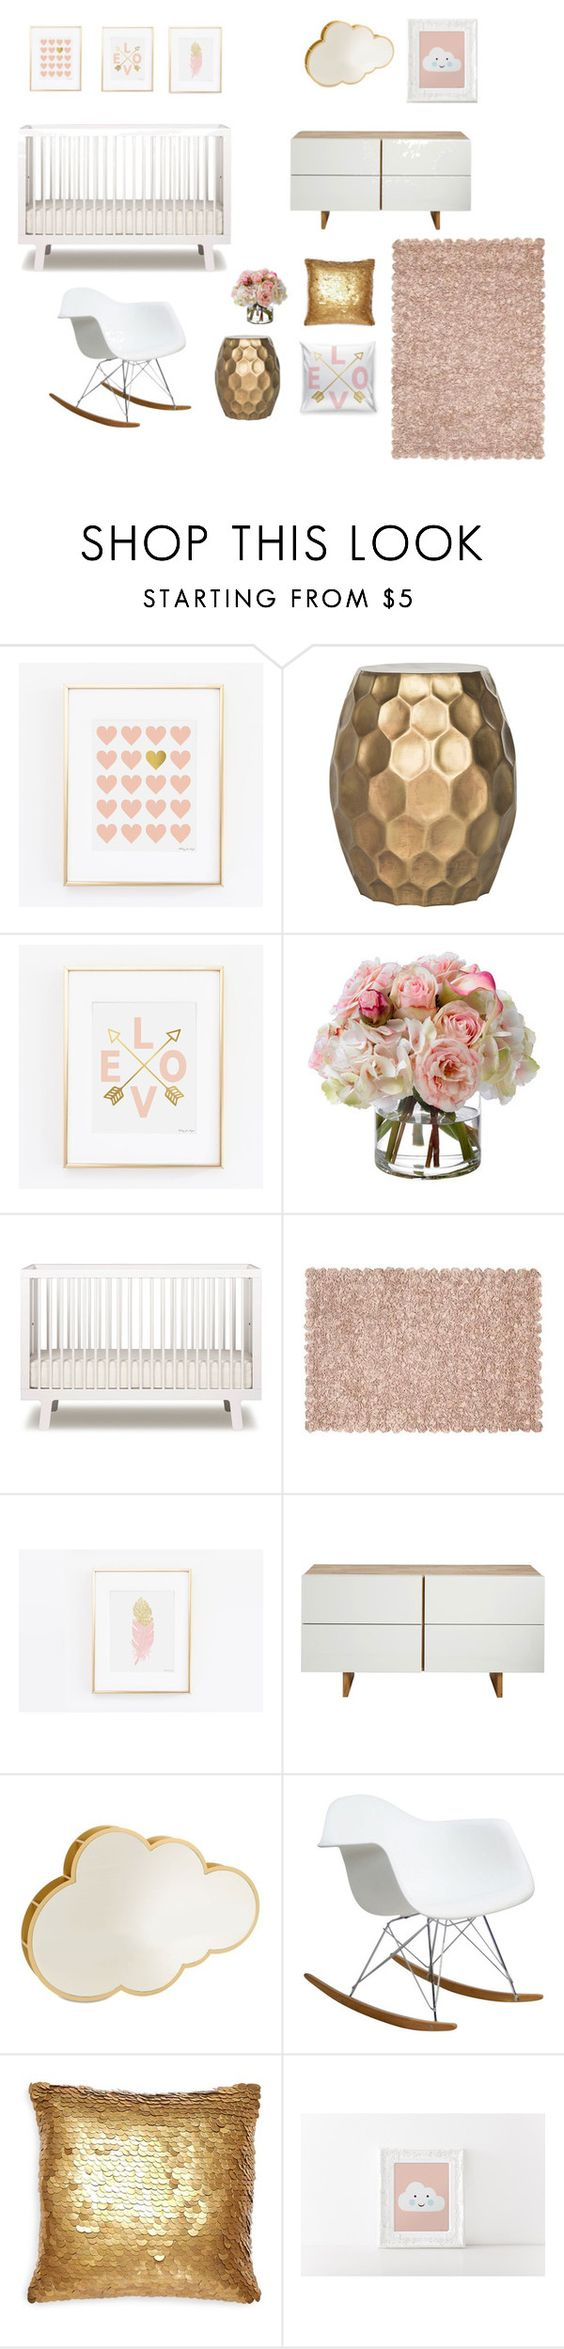 """""""Pink and Gold Baby Nursery"""" by pennyjanedesigns on Polyvore featuring interior, interiors, interior design, home, home decor, interior decorating, Safavieh, Diane James, Oeuf and MASH Studios"""